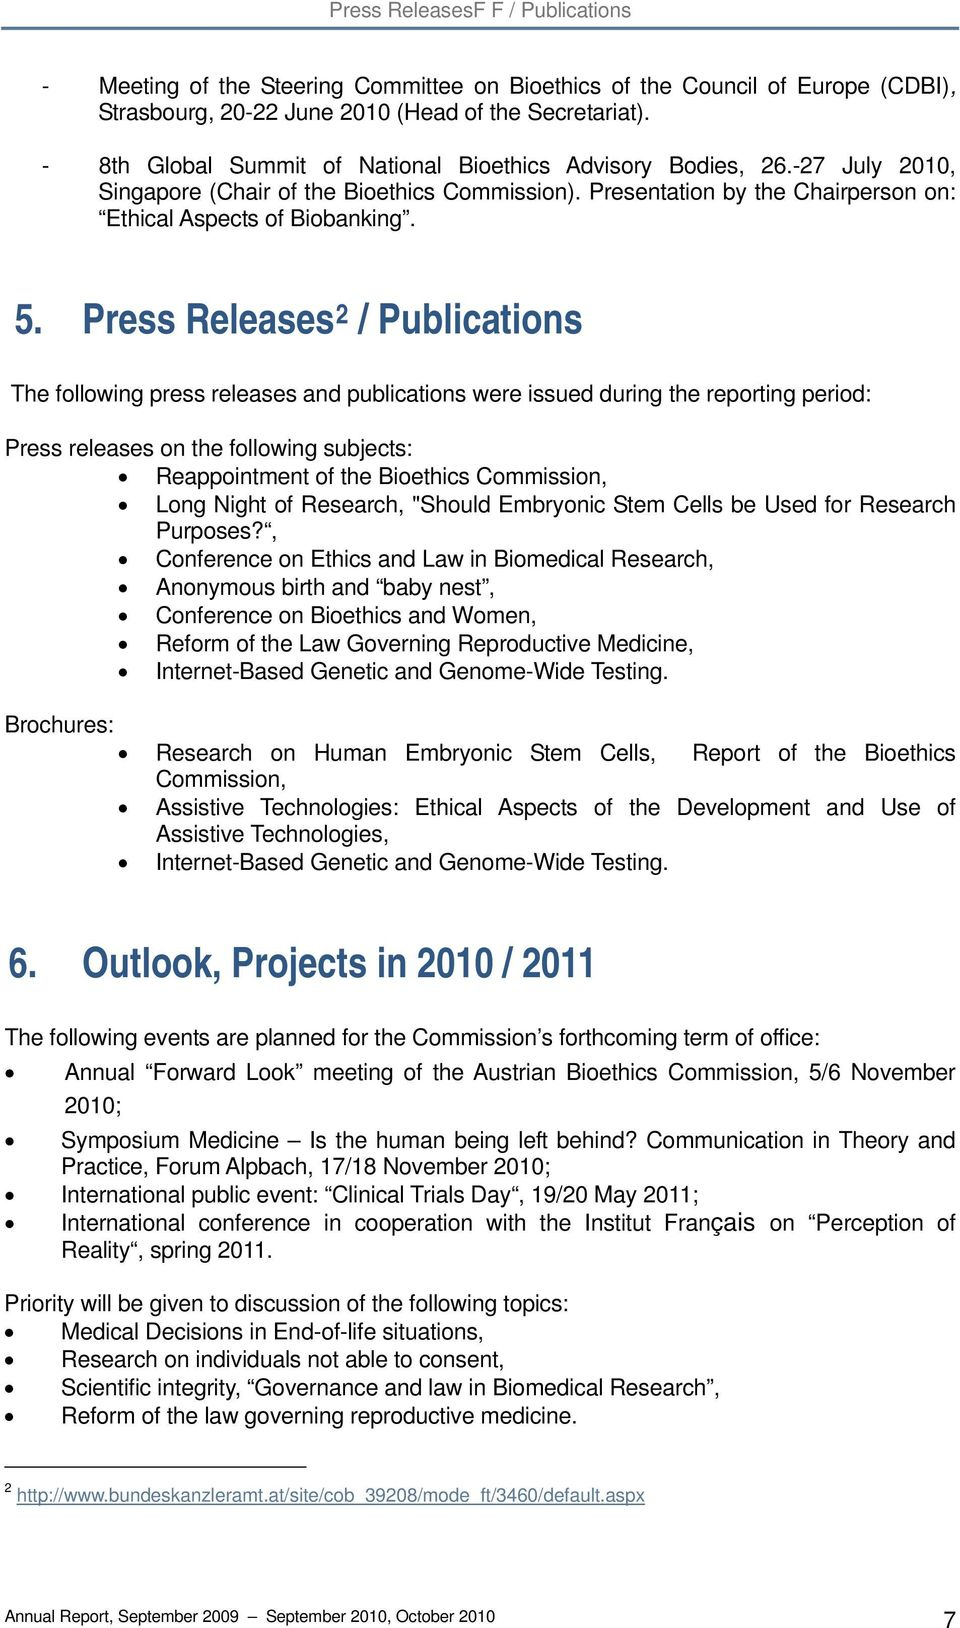 Press Releases 2 / Publications The following press releases and publications were issued during the reporting period: Press releases on the following subjects: Reappointment of the Bioethics